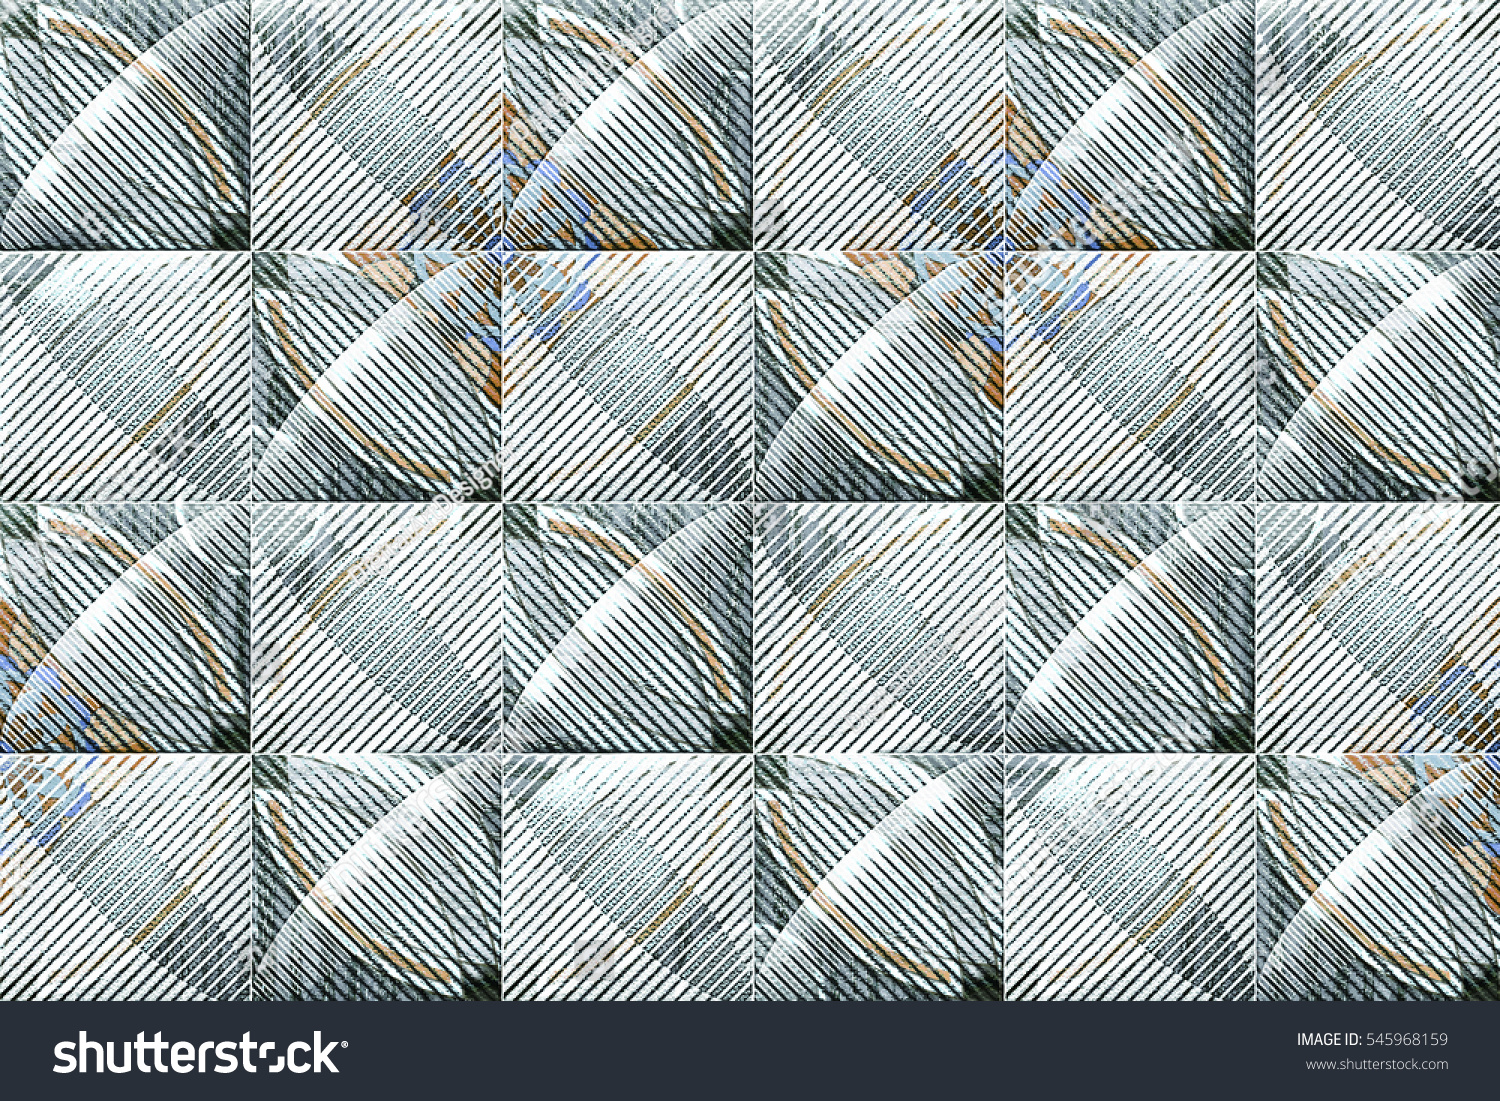 Colorful vintage ceramic tiles wall decorationdigital stock colorful vintage ceramic tiles wall decorationdigital tiles design dailygadgetfo Choice Image